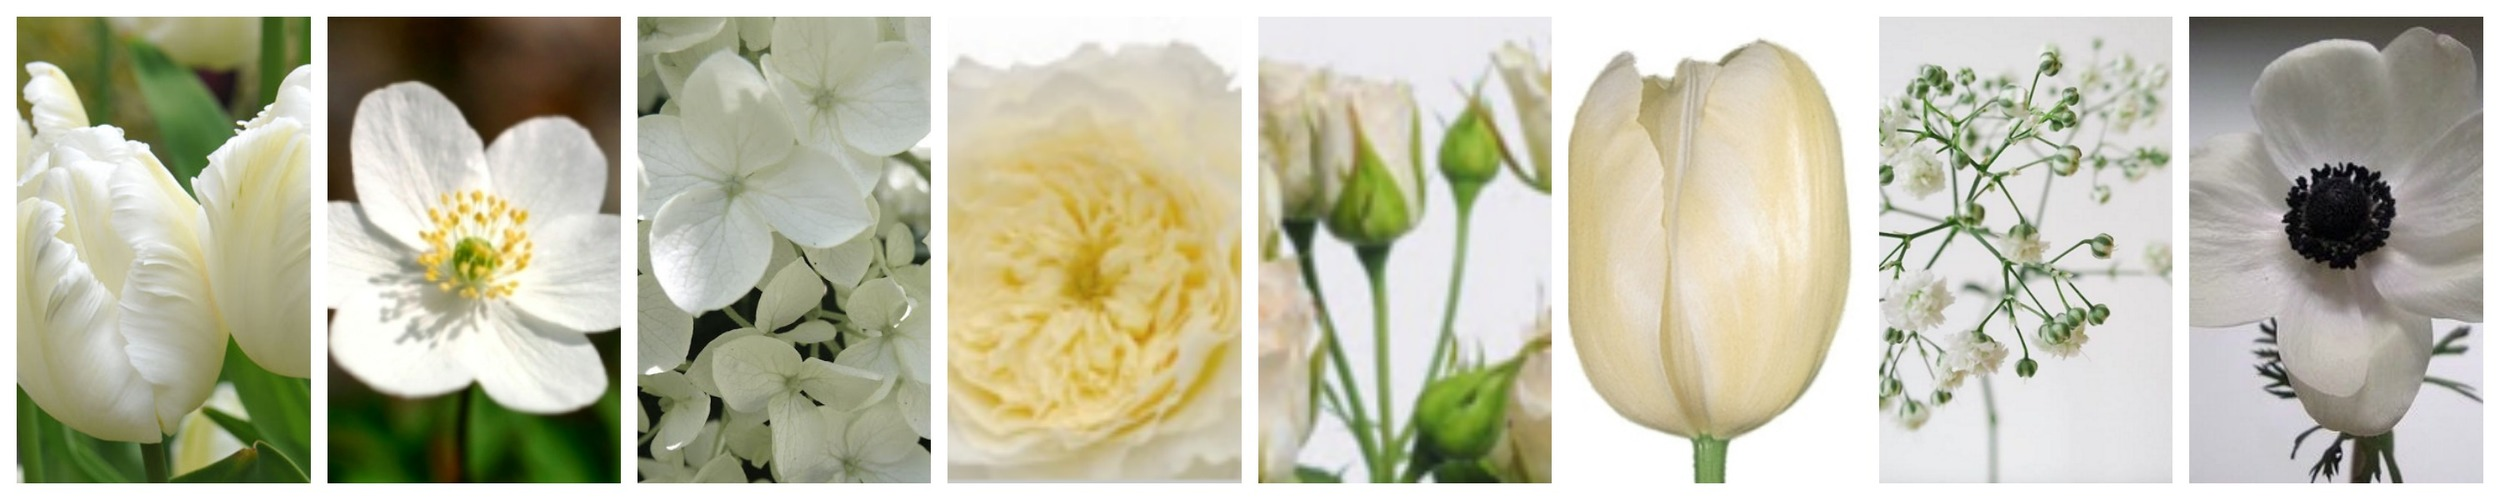 White Flower Mix Wedding Floral Design Blog NZ Tulip Hydrangea Poppy Babies Breath Why Flowers Expensive Table Flower